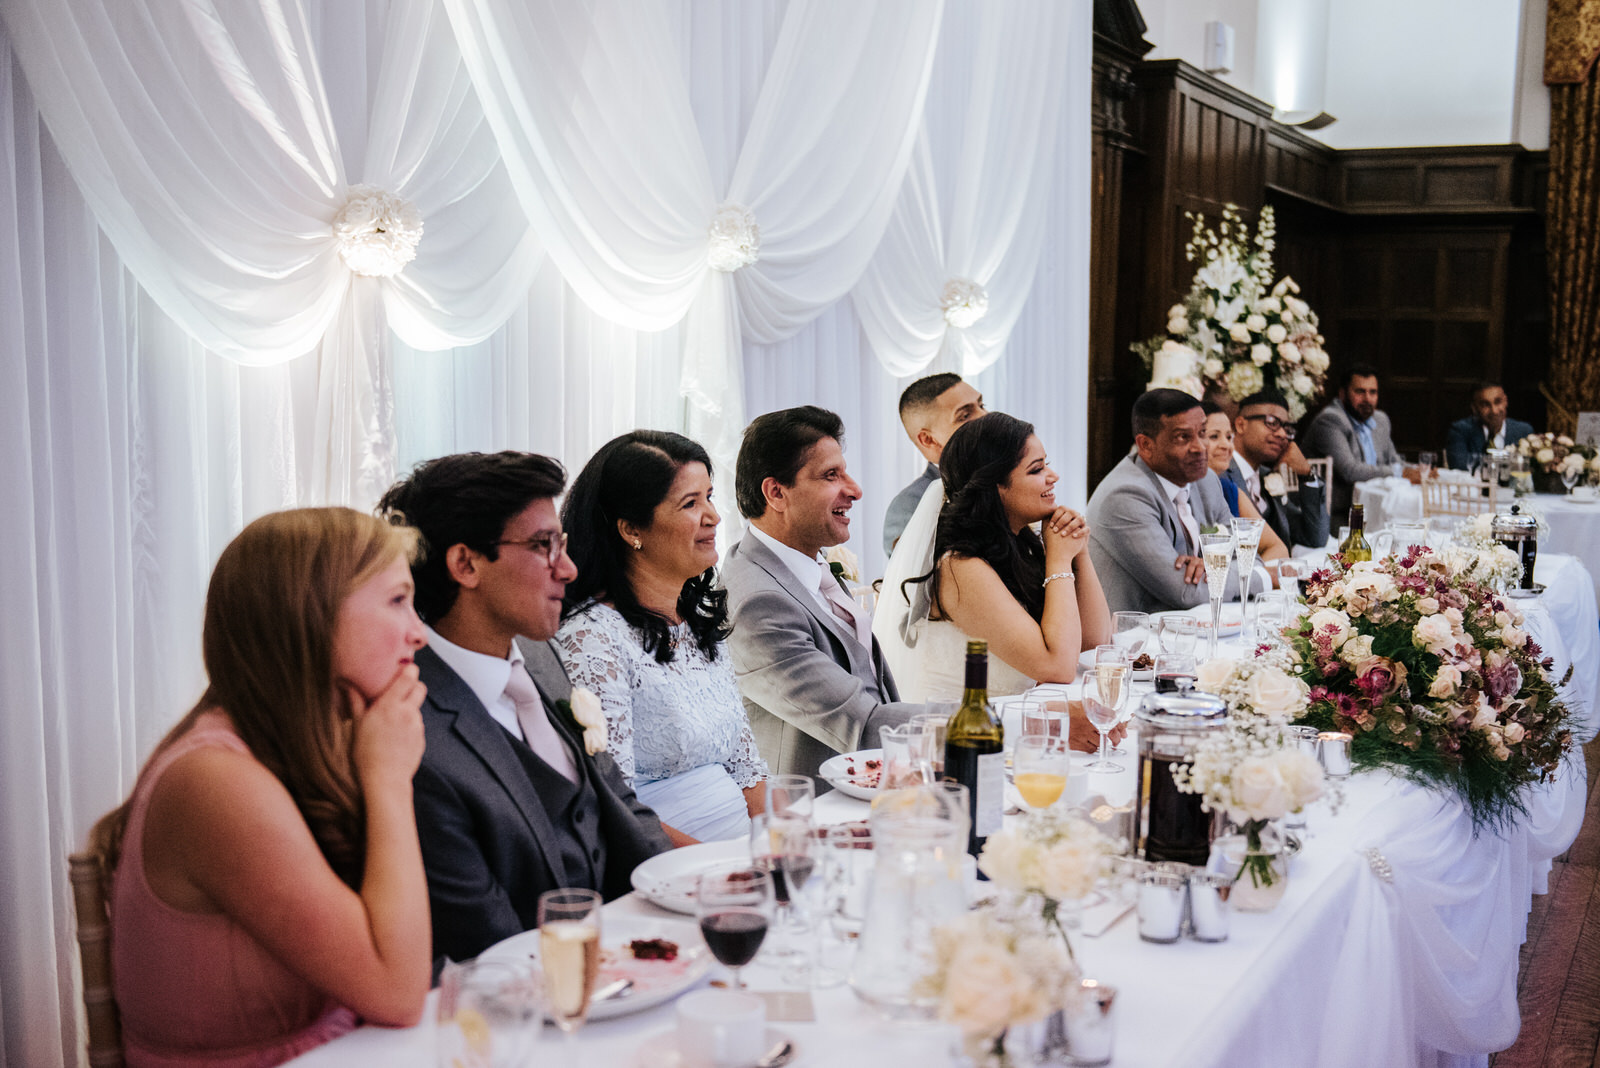 Head table looks at maid of honor delivering her speech